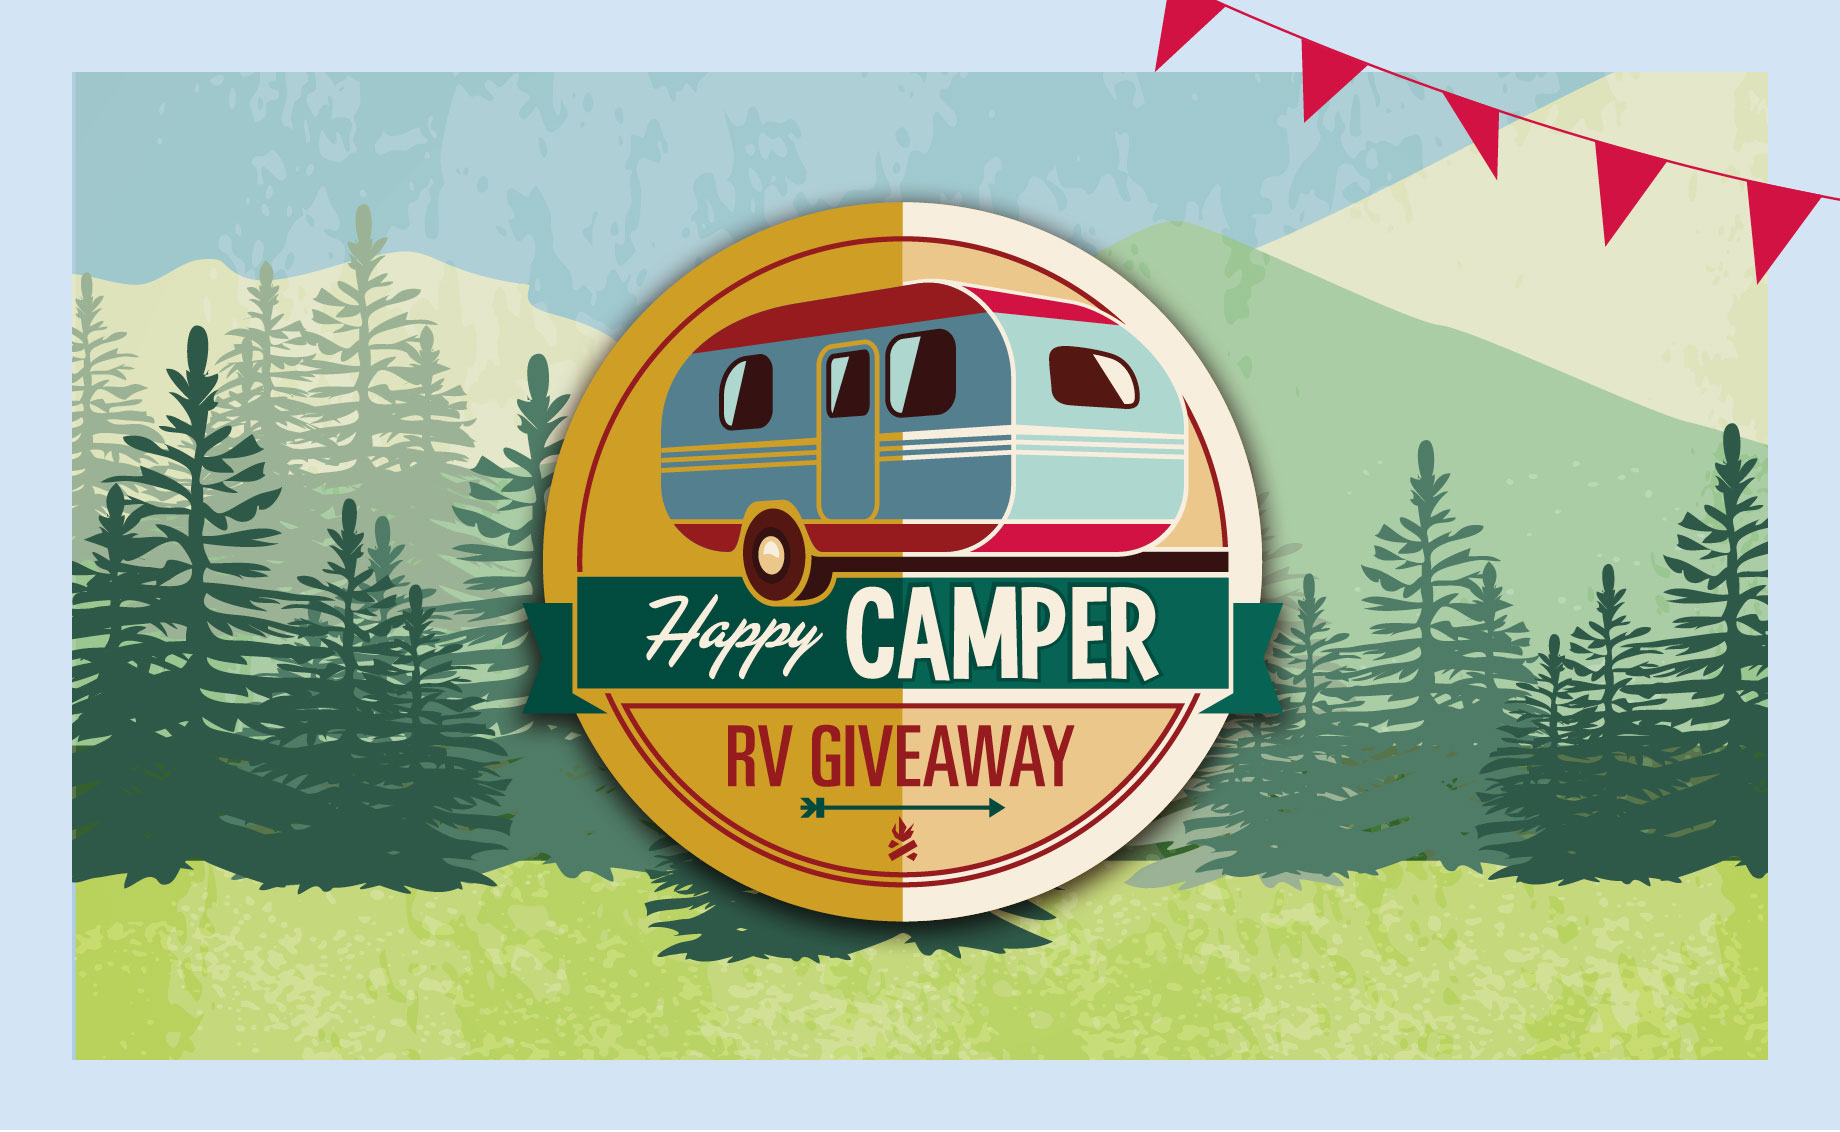 Happy Camper RV Giveaway